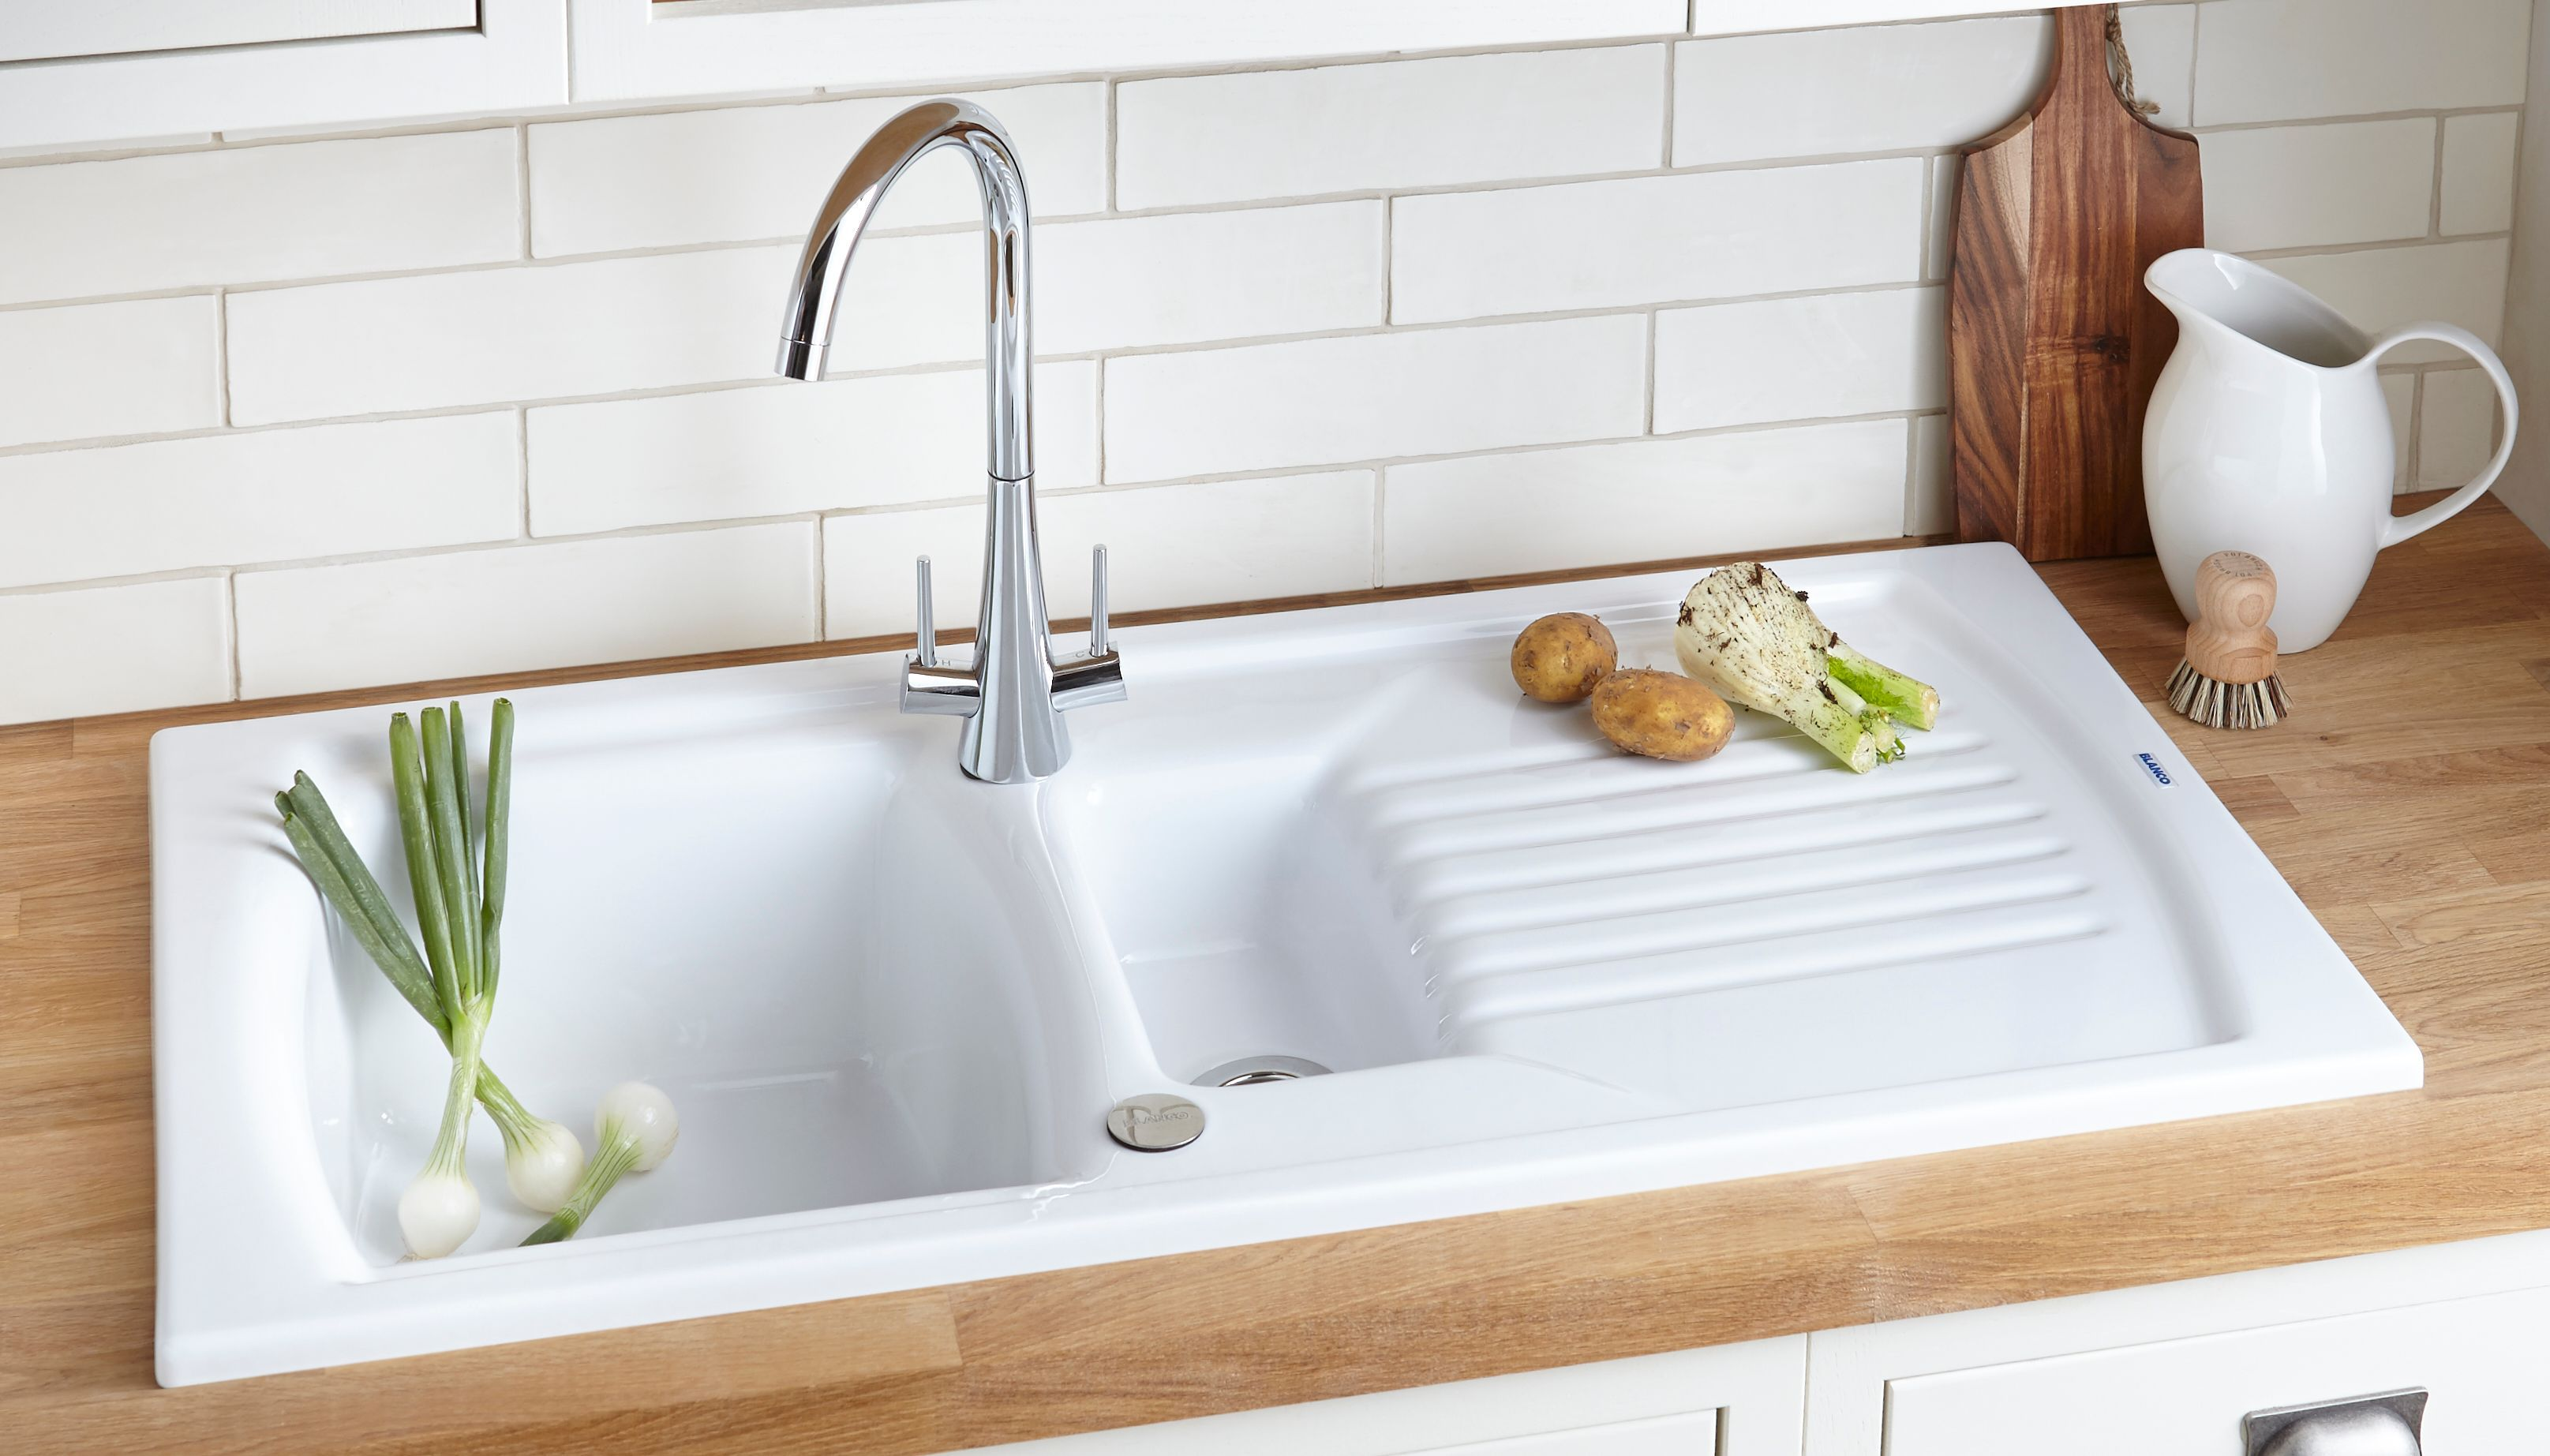 Ceramic Kitchen Sink Harga Wastafel Cuci Piring Keramik Wastafel Pinterest